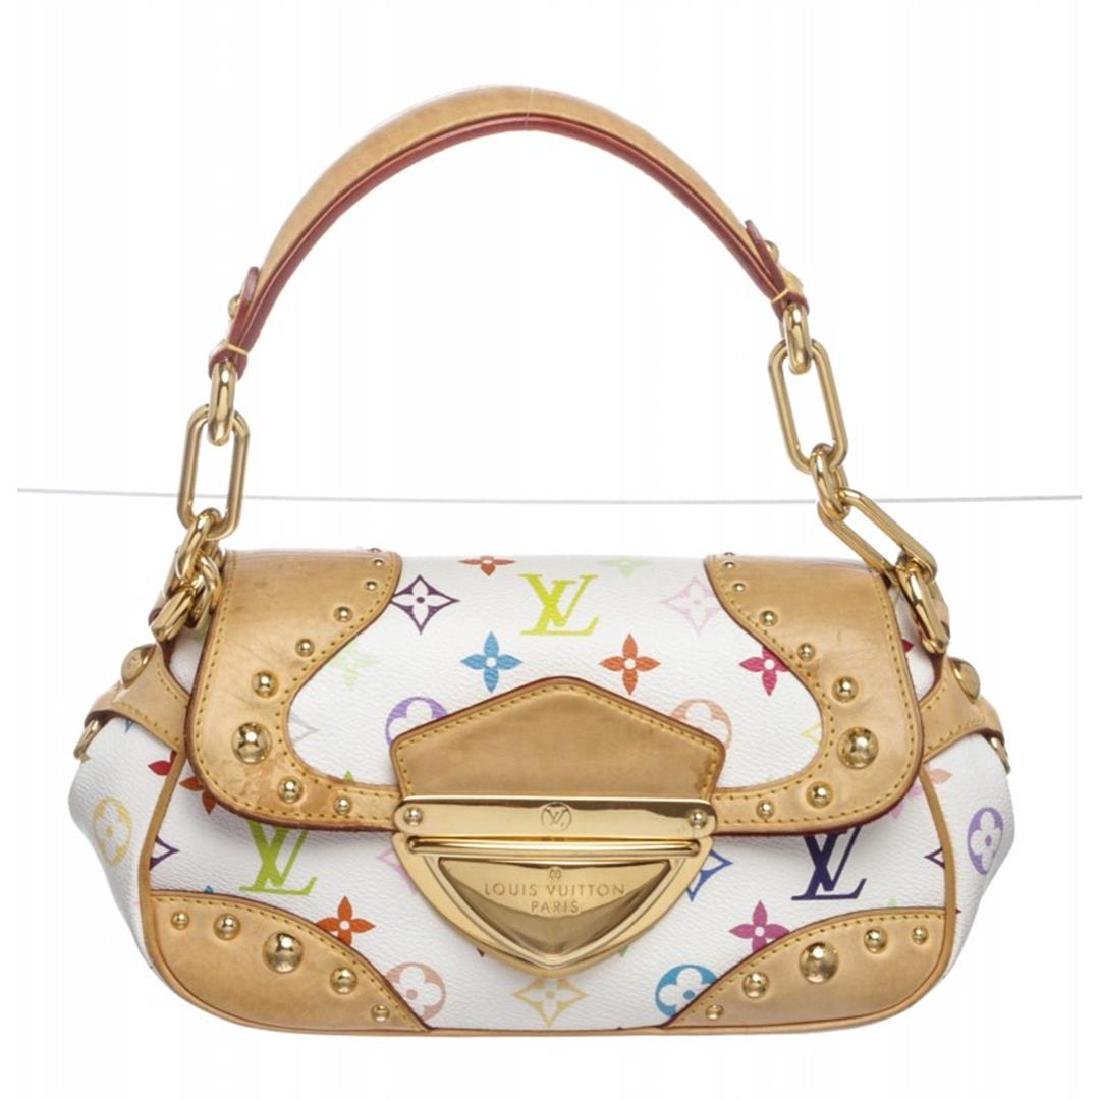 Louis Vuitton White Multicolor Monogram Marilyn Handbag